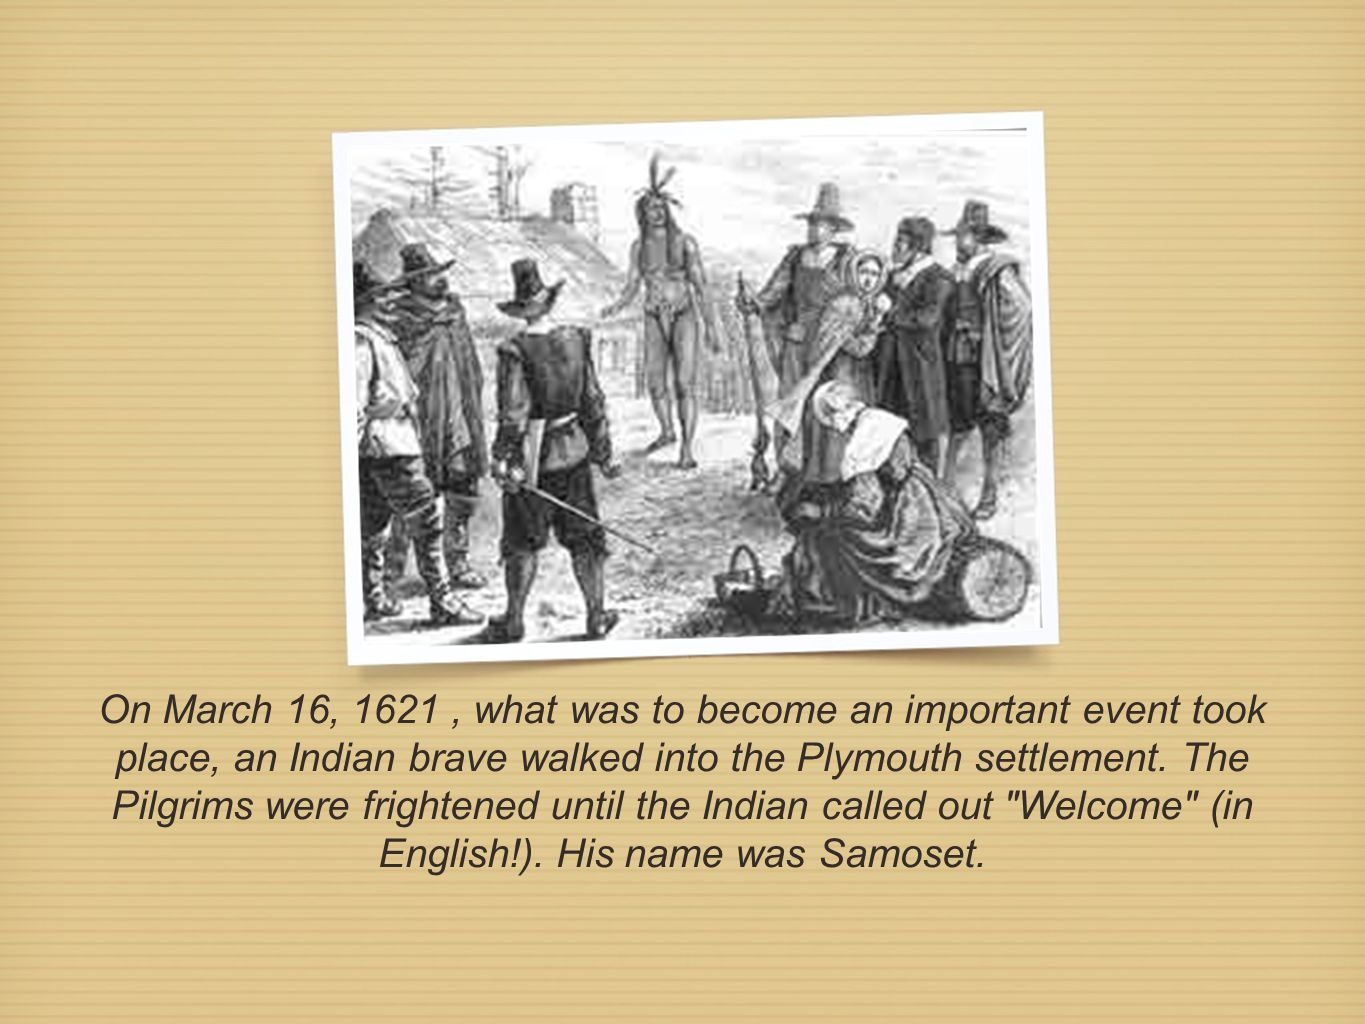 On March 16, 1621 , what was to become an important event took place, an Indian brave walked into the Plymouth settlement.